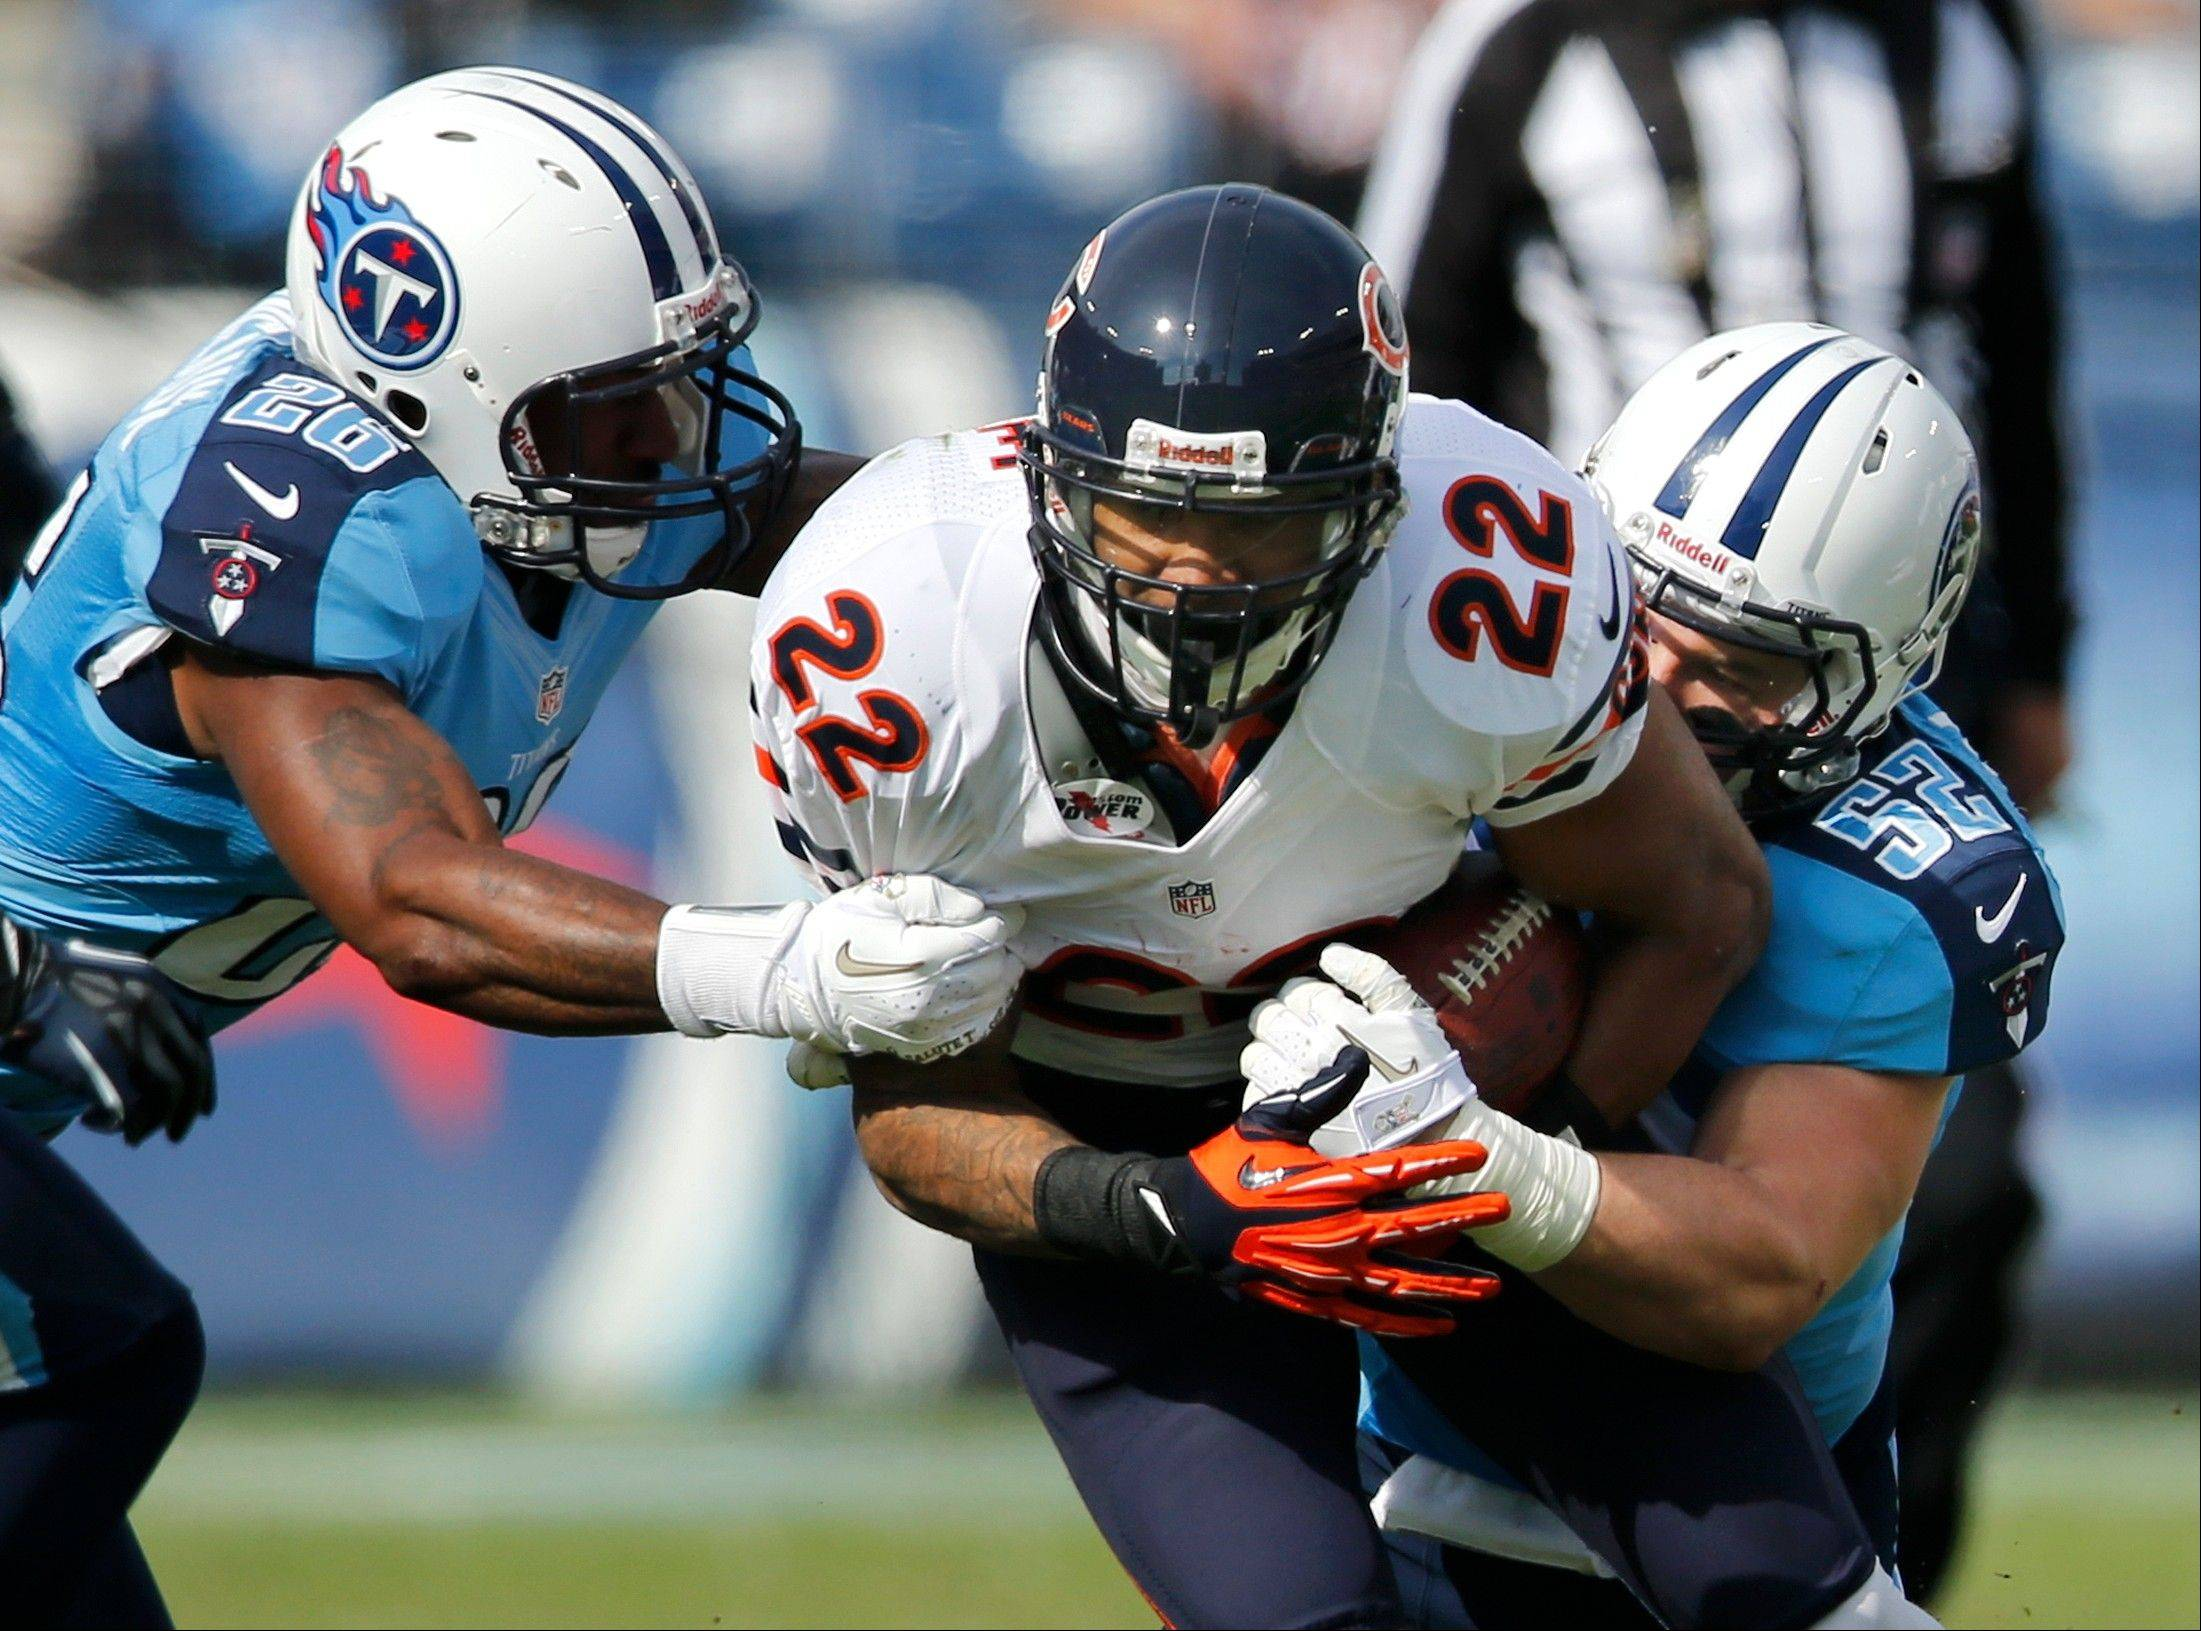 Chicago Bears running back Matt Forte is stopped by Tennessee Titans defenders Jordan Babineaux and Colin McCarthy in the first quarter.